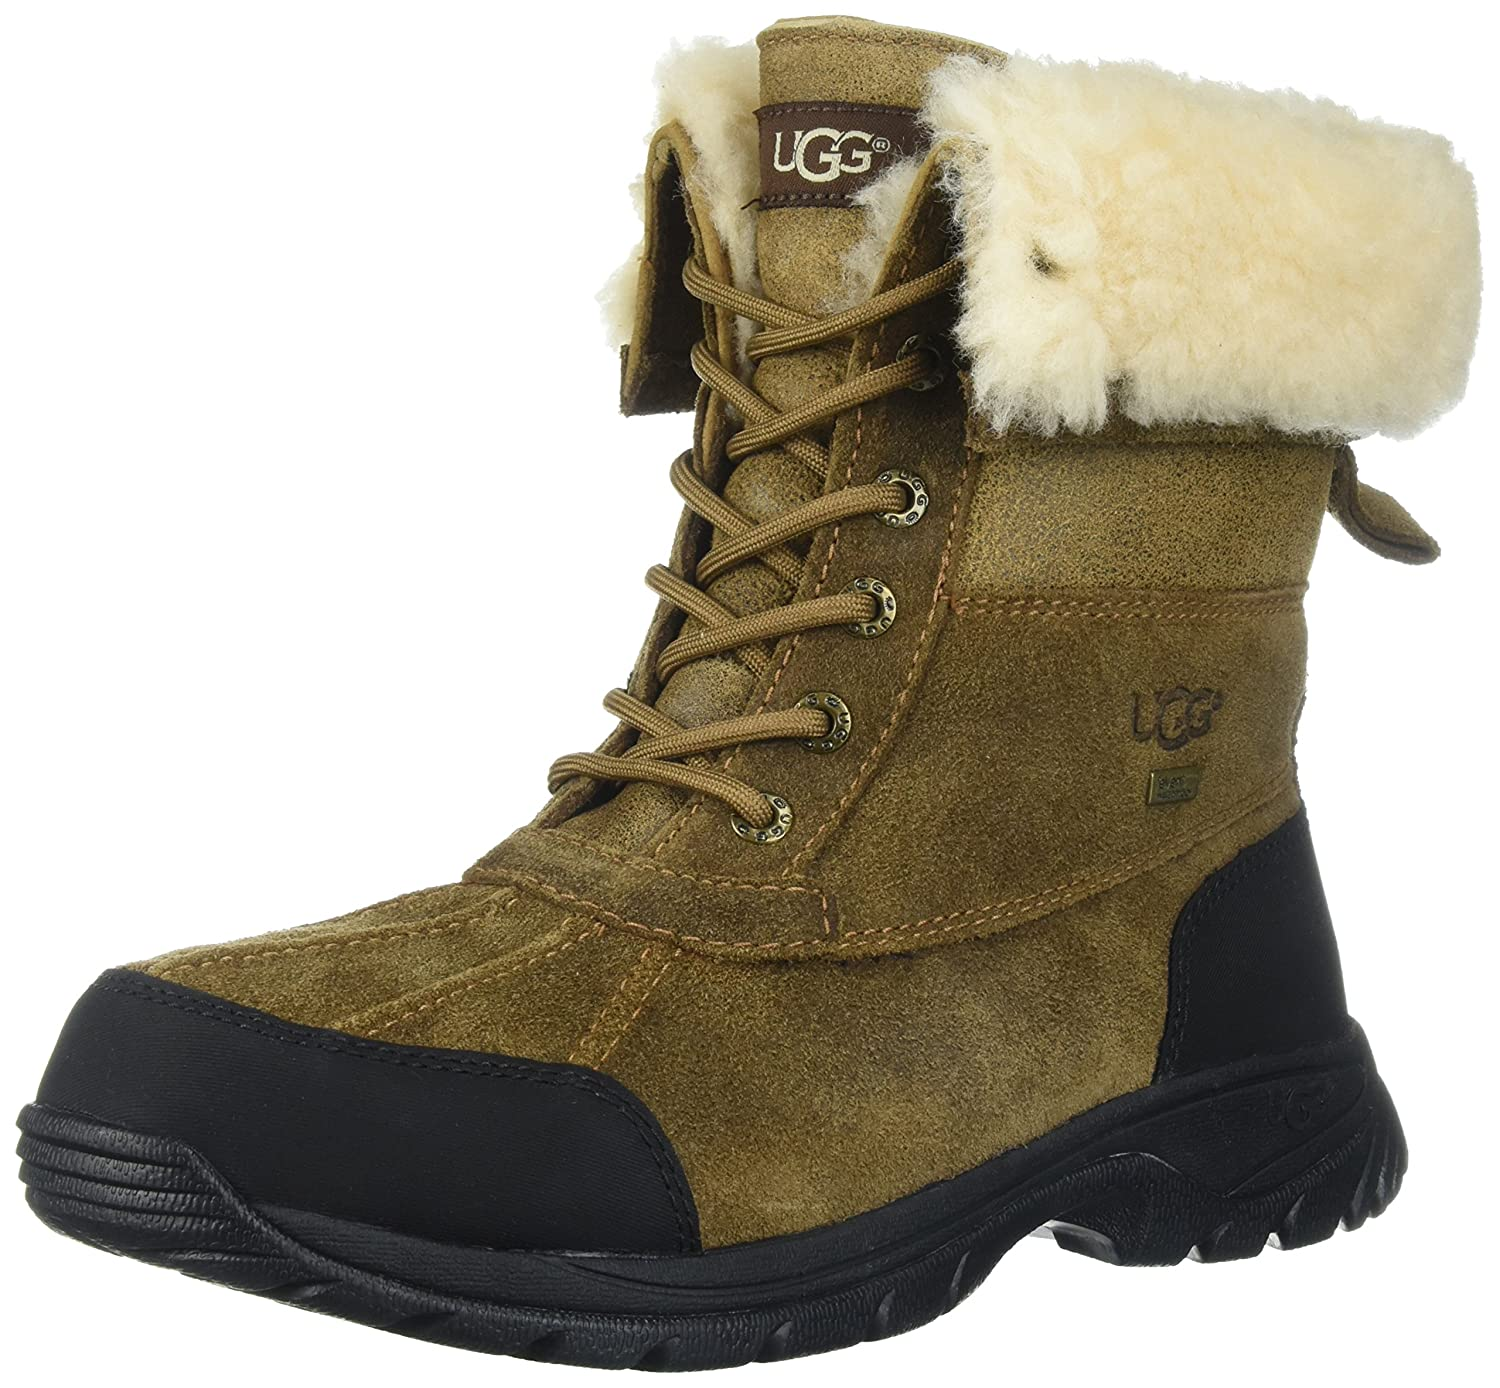 Uggs leather bomber boots